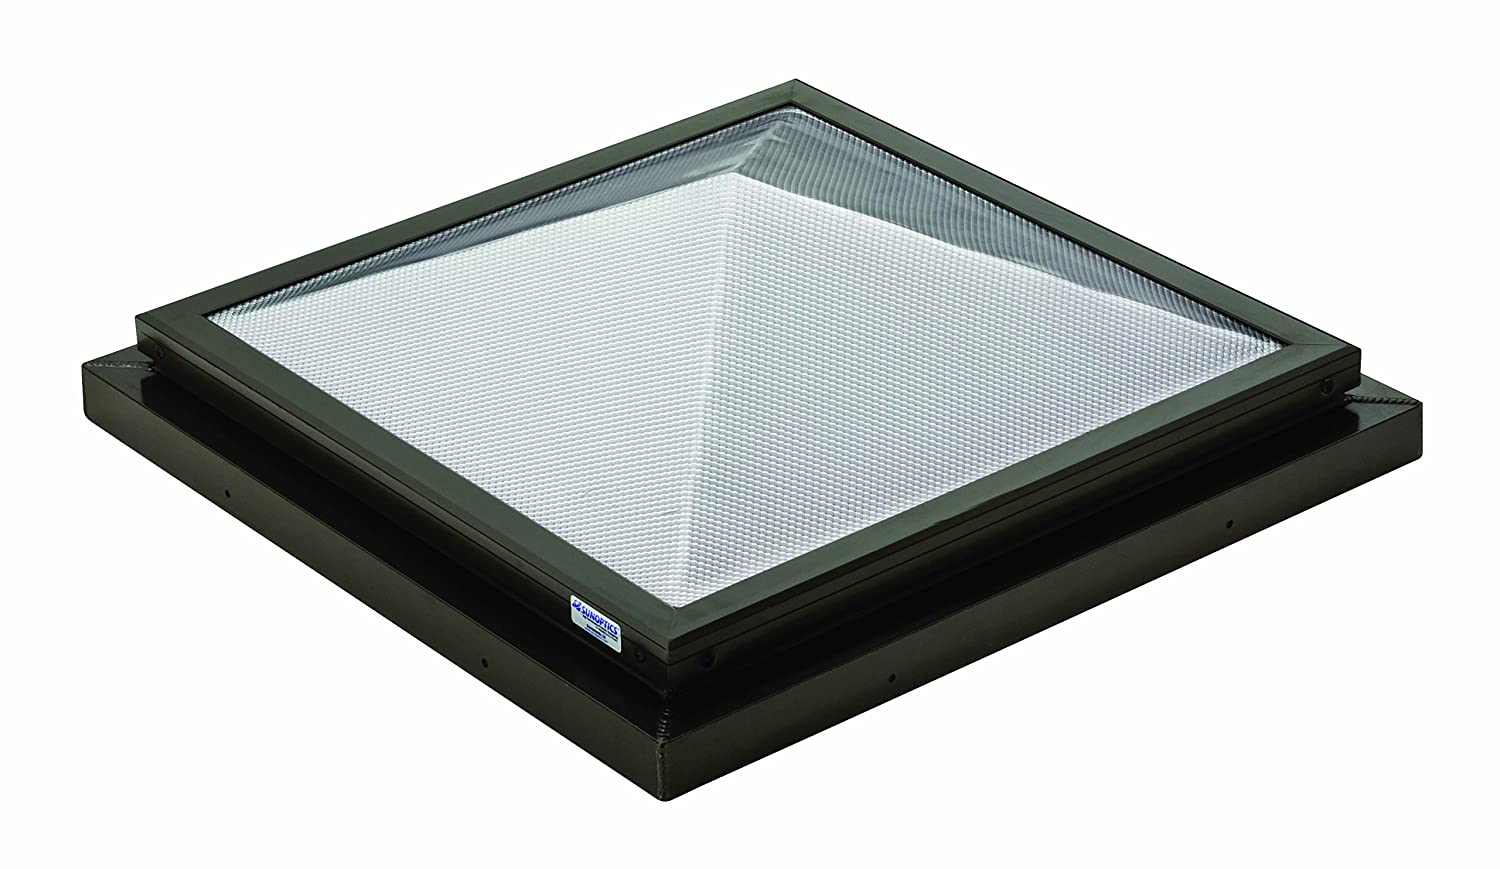 Sunoptics SUN R2020 PYL TGZ 50CC2 800MD BZ 2 Feet by 2 Feet Triple Glazed Fixed Curb Mounted Prismatic Pyramid Skylight Bronze